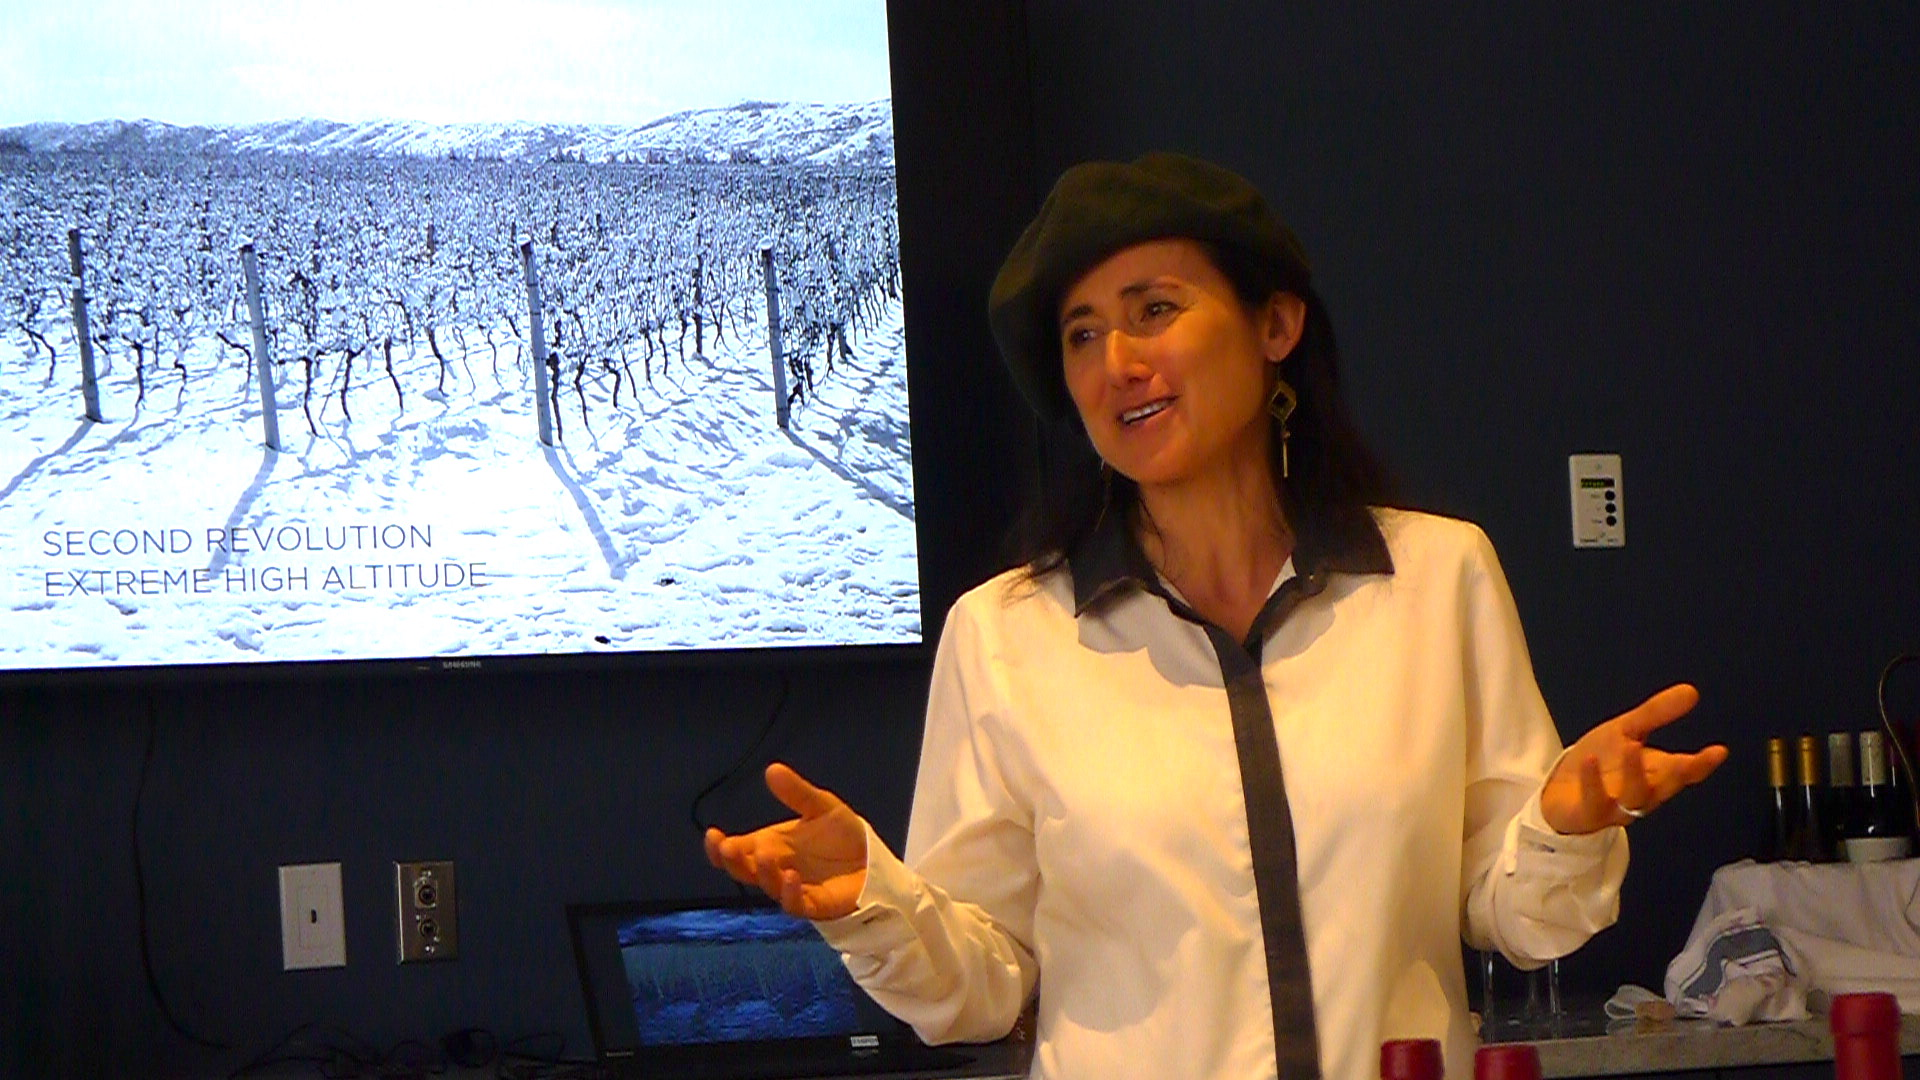 The irrepressible Laura Catena was in Toronto this week to speak about her family's history in Argentina and the three revolutions the wines have gone through at Bodega Catena Zapata.